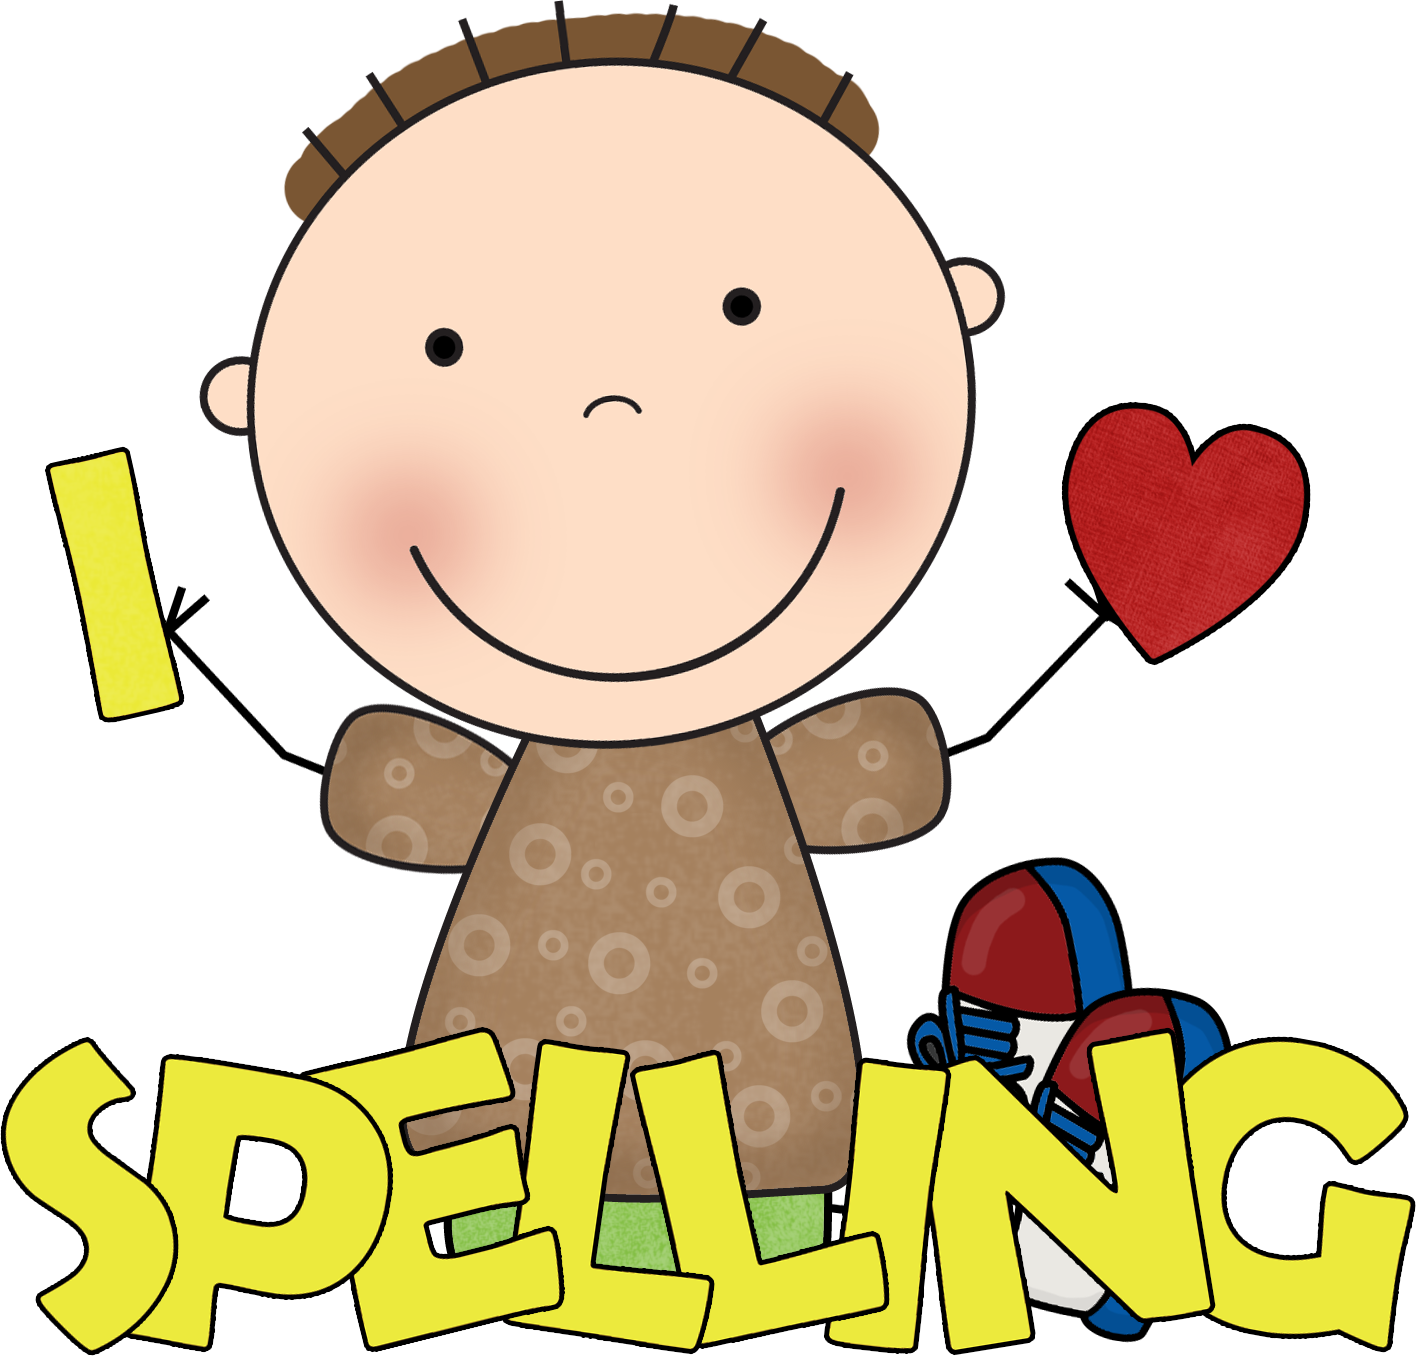 Word writing clipart jpg free download Spelling Clip Art & Spelling Clip Art Clip Art Images. | Clipart ... jpg free download